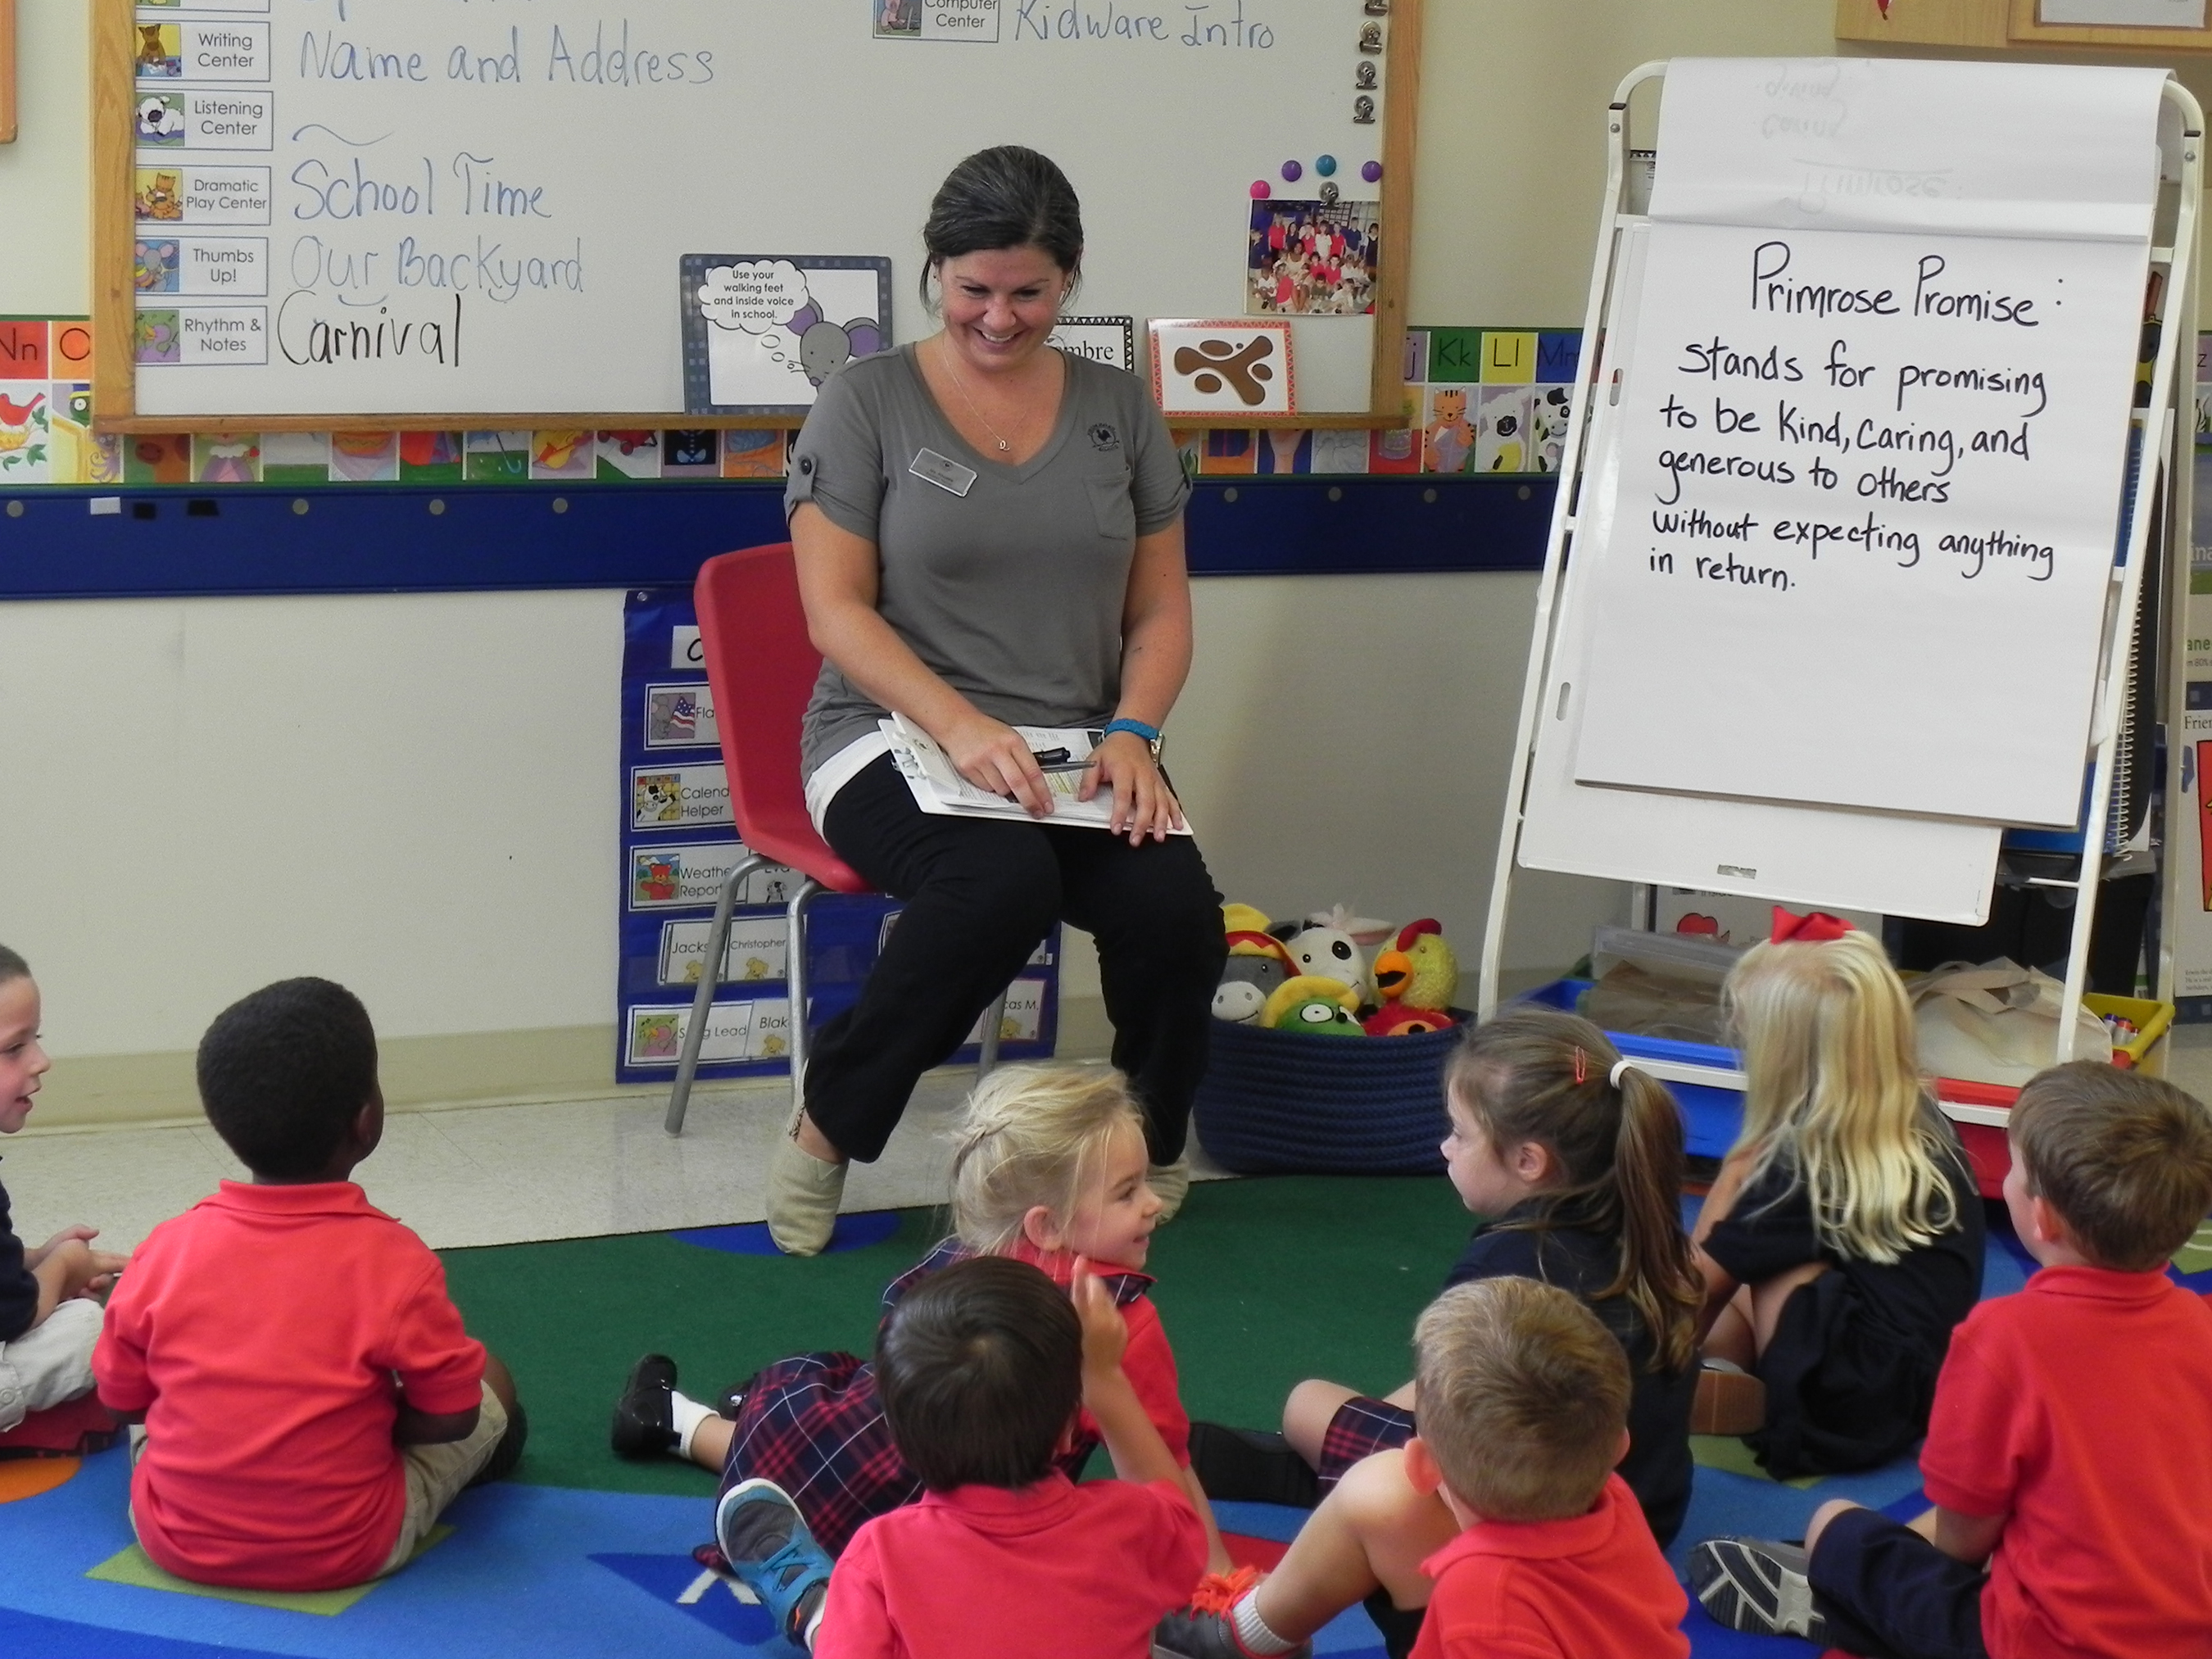 Primrose nurtures compassion and giving without expectation in children through its exclusive Balanced Learning® approach.